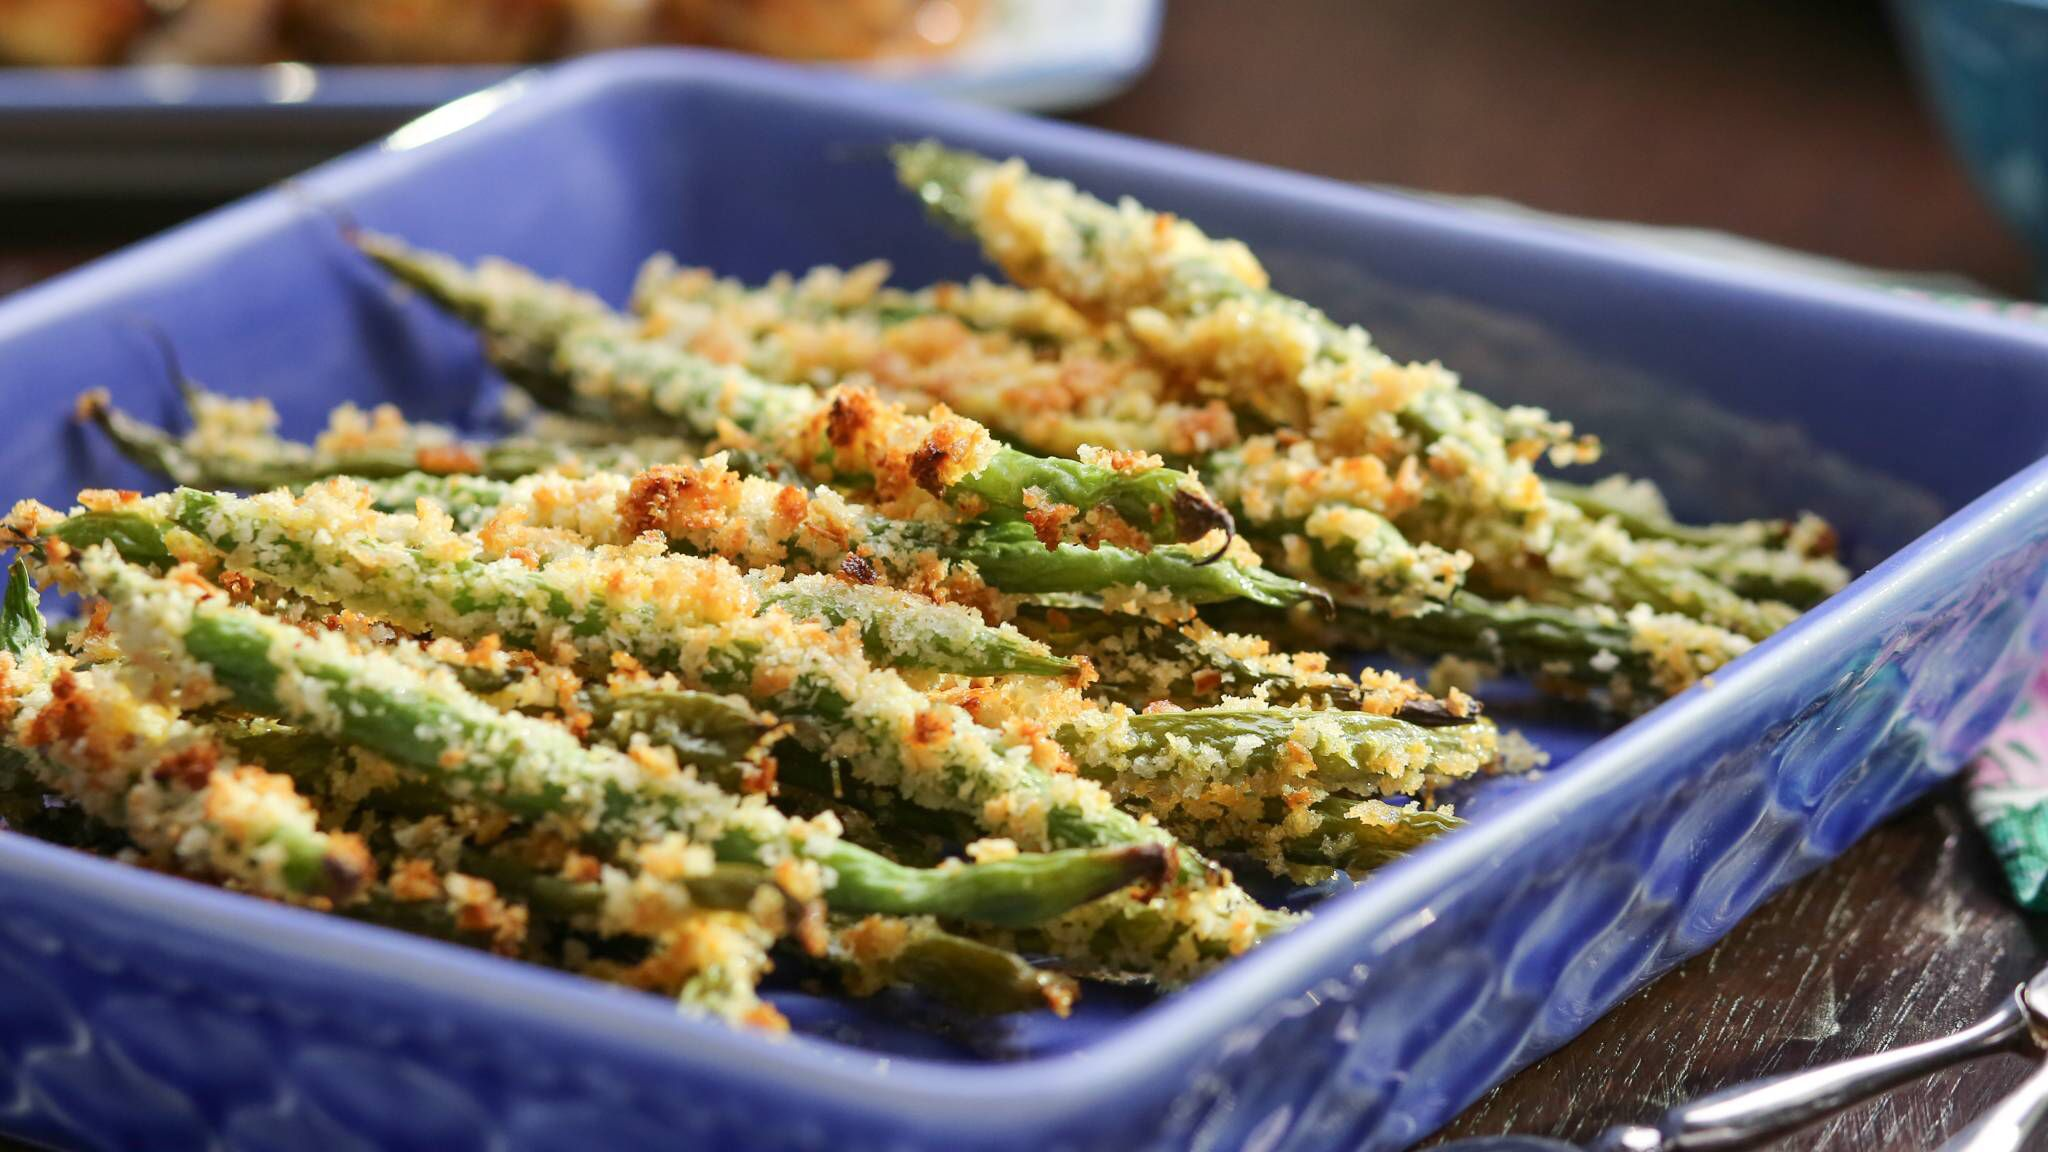 Green Bean Oven Fries With Valerie Bertinelli In 2020 Food Network Recipes Fries In The Oven Oven Green Beans